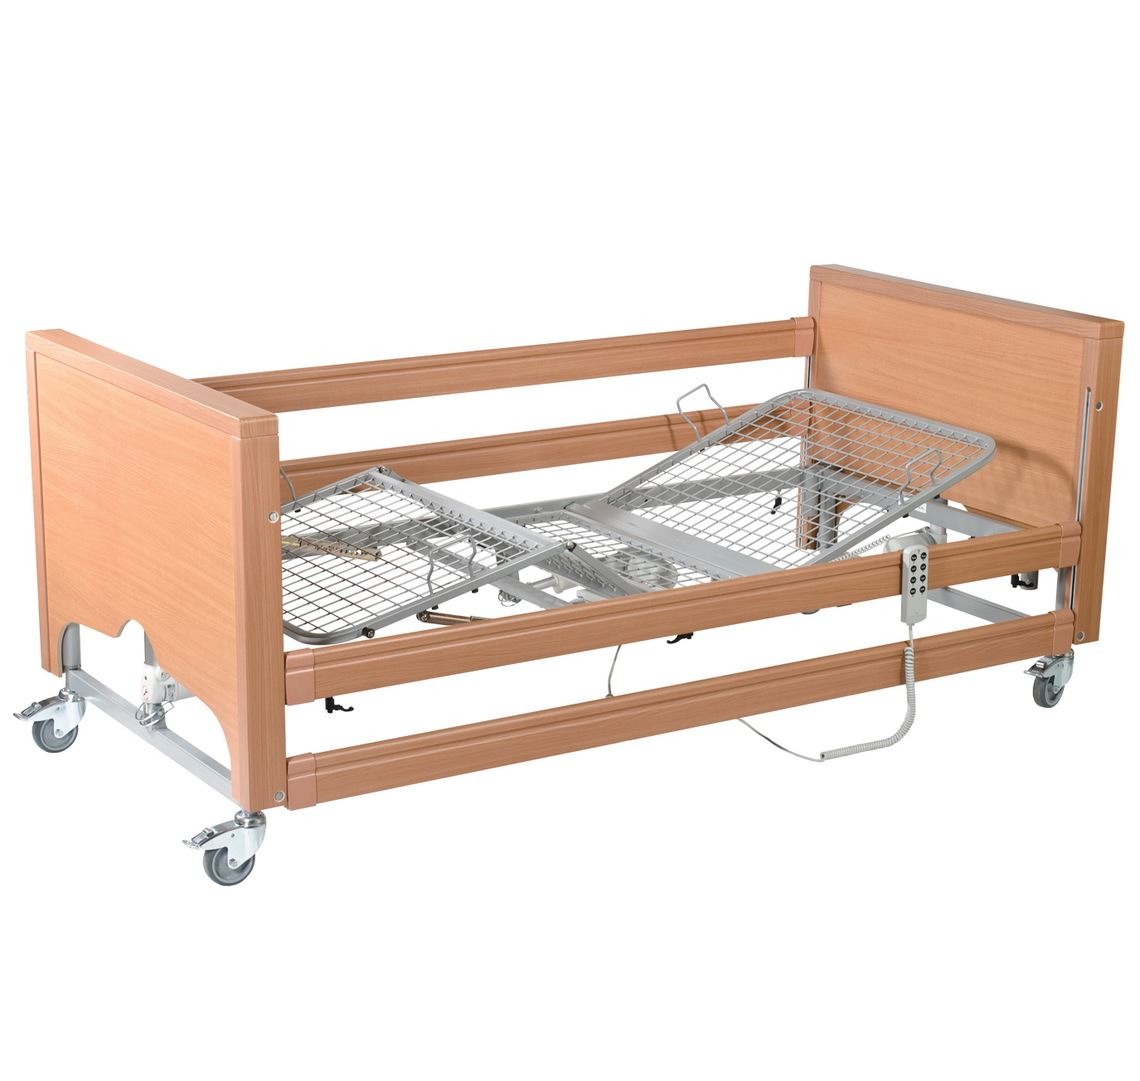 Picture of Casa Med Classic FS Low Profiling Bed - Oak with Metal Mesh and Side Rails